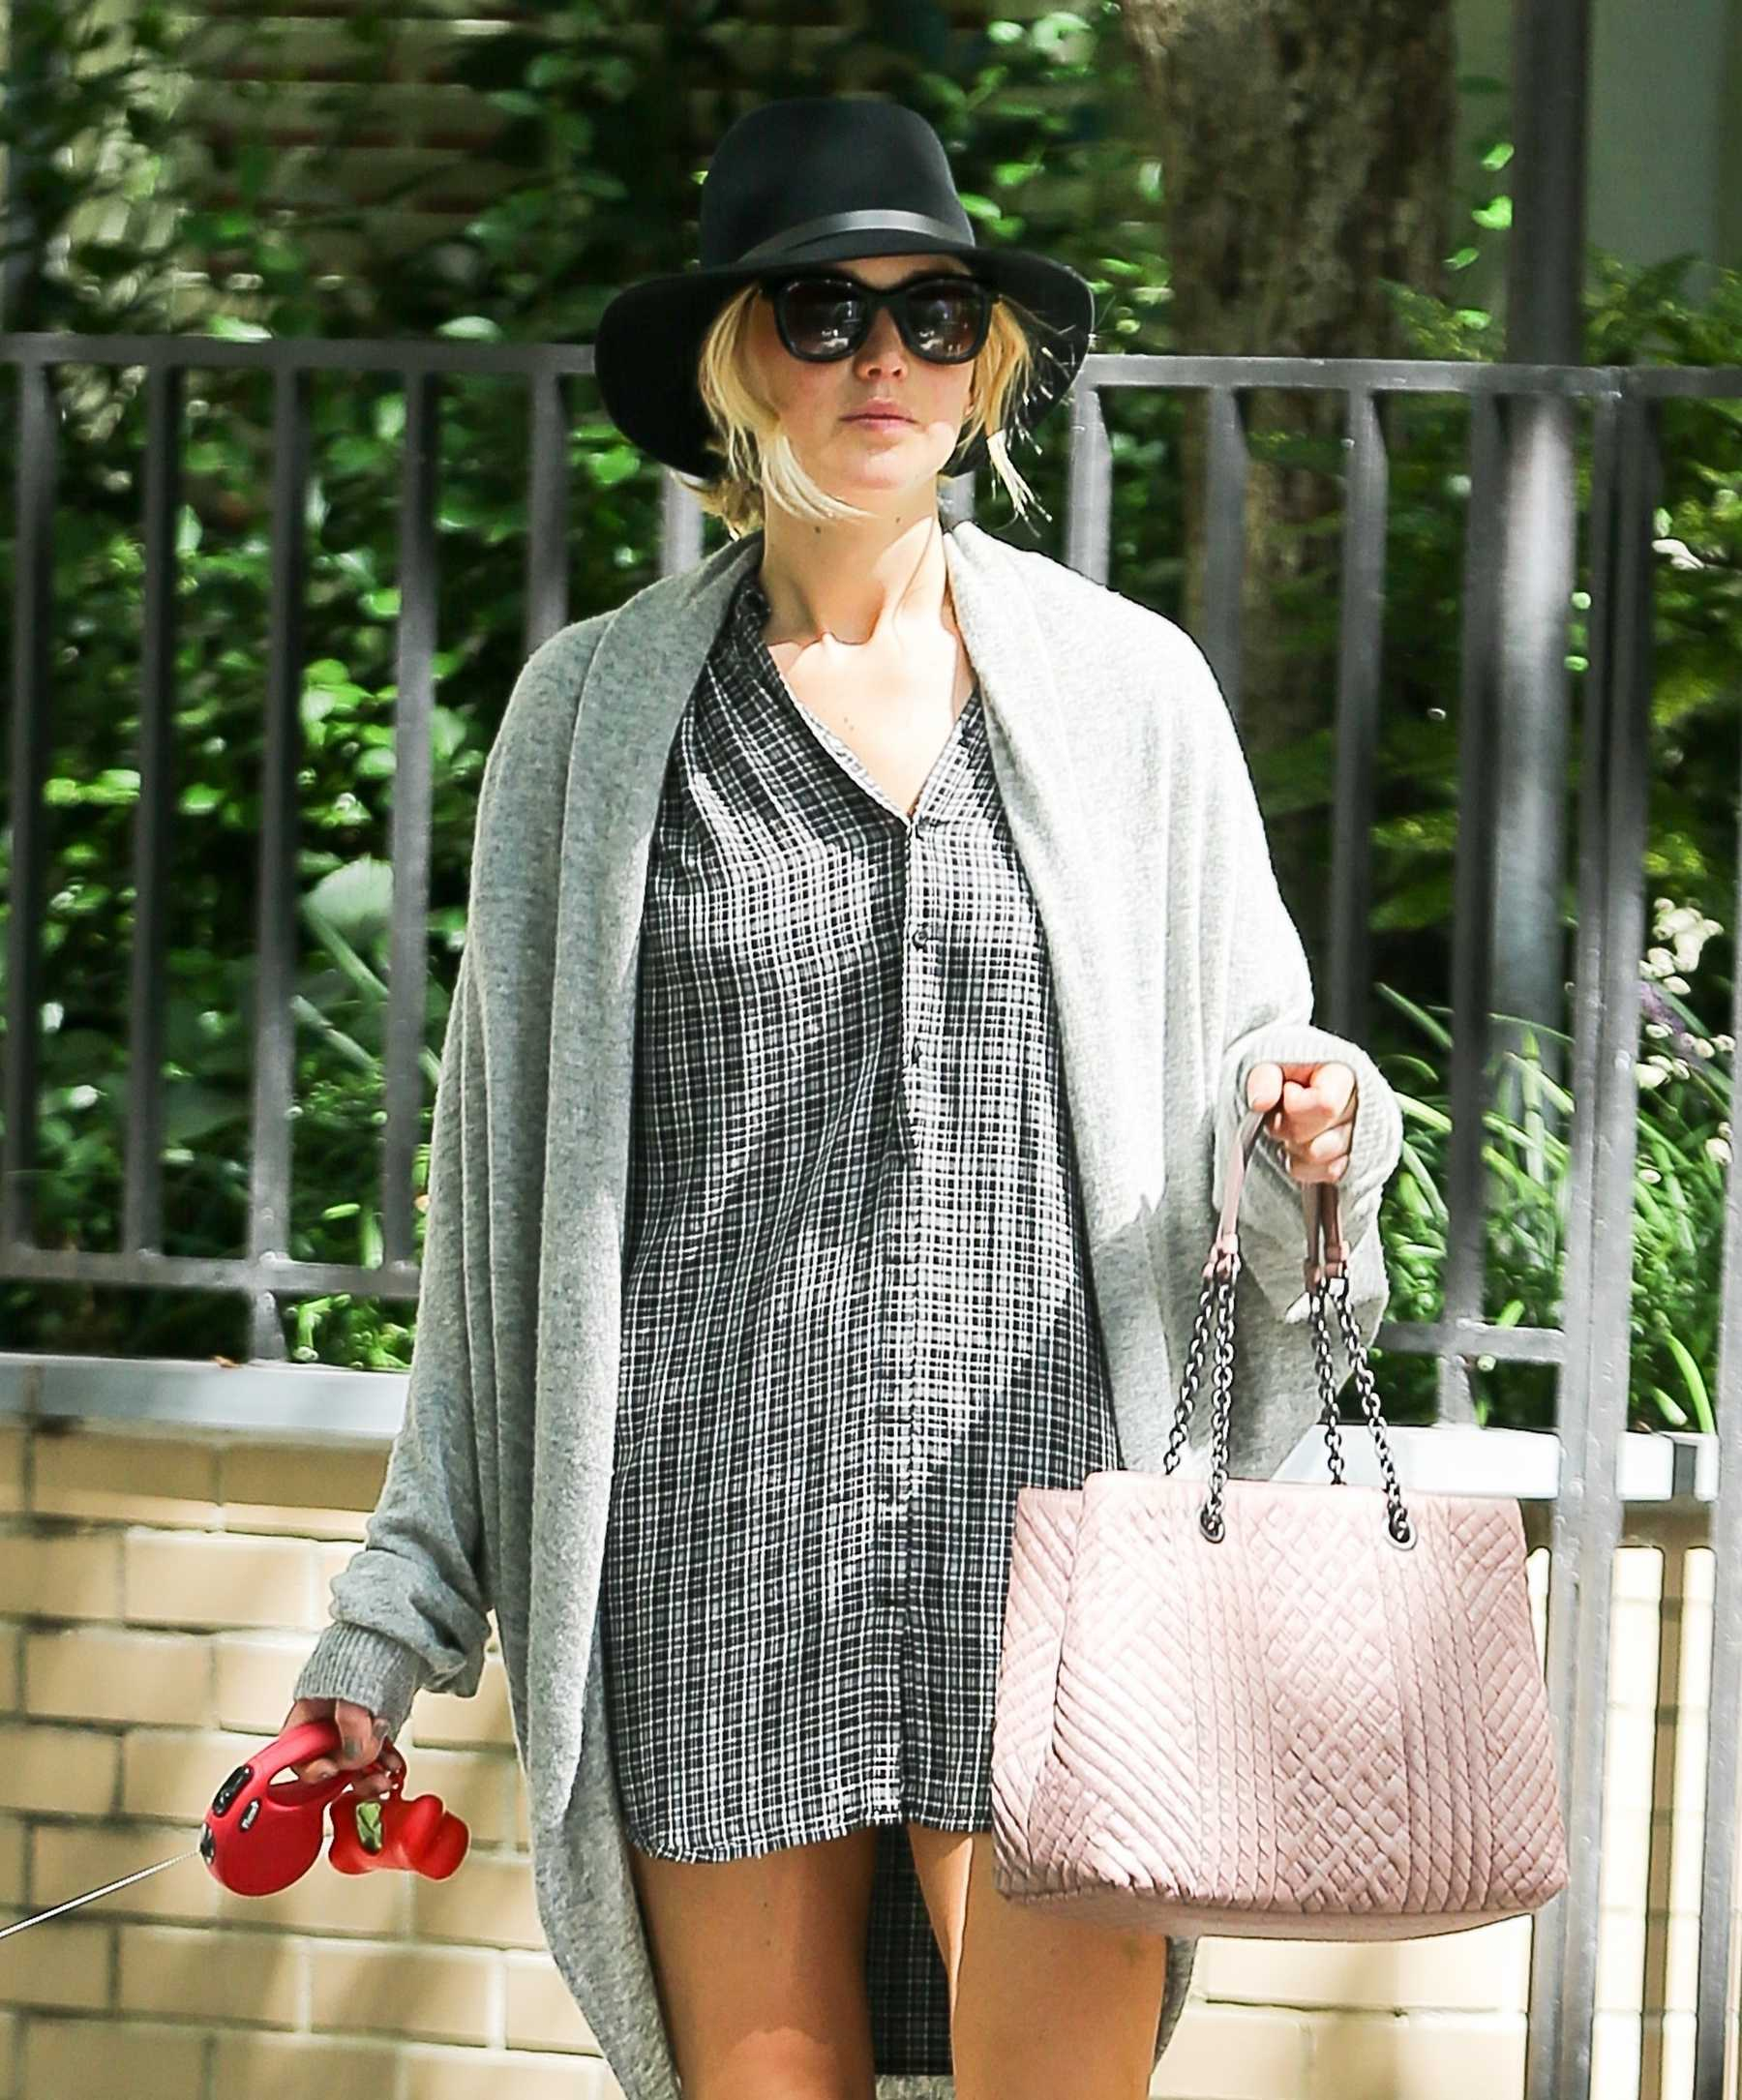 http://jenniferlawrencedaily.com/gallery/albums/userpics/10001/Jennifer_Lawrence_-_Goes_for_a_stroll_with_her_dog_Pippi_in_NYC_on_September_1-05.jpg